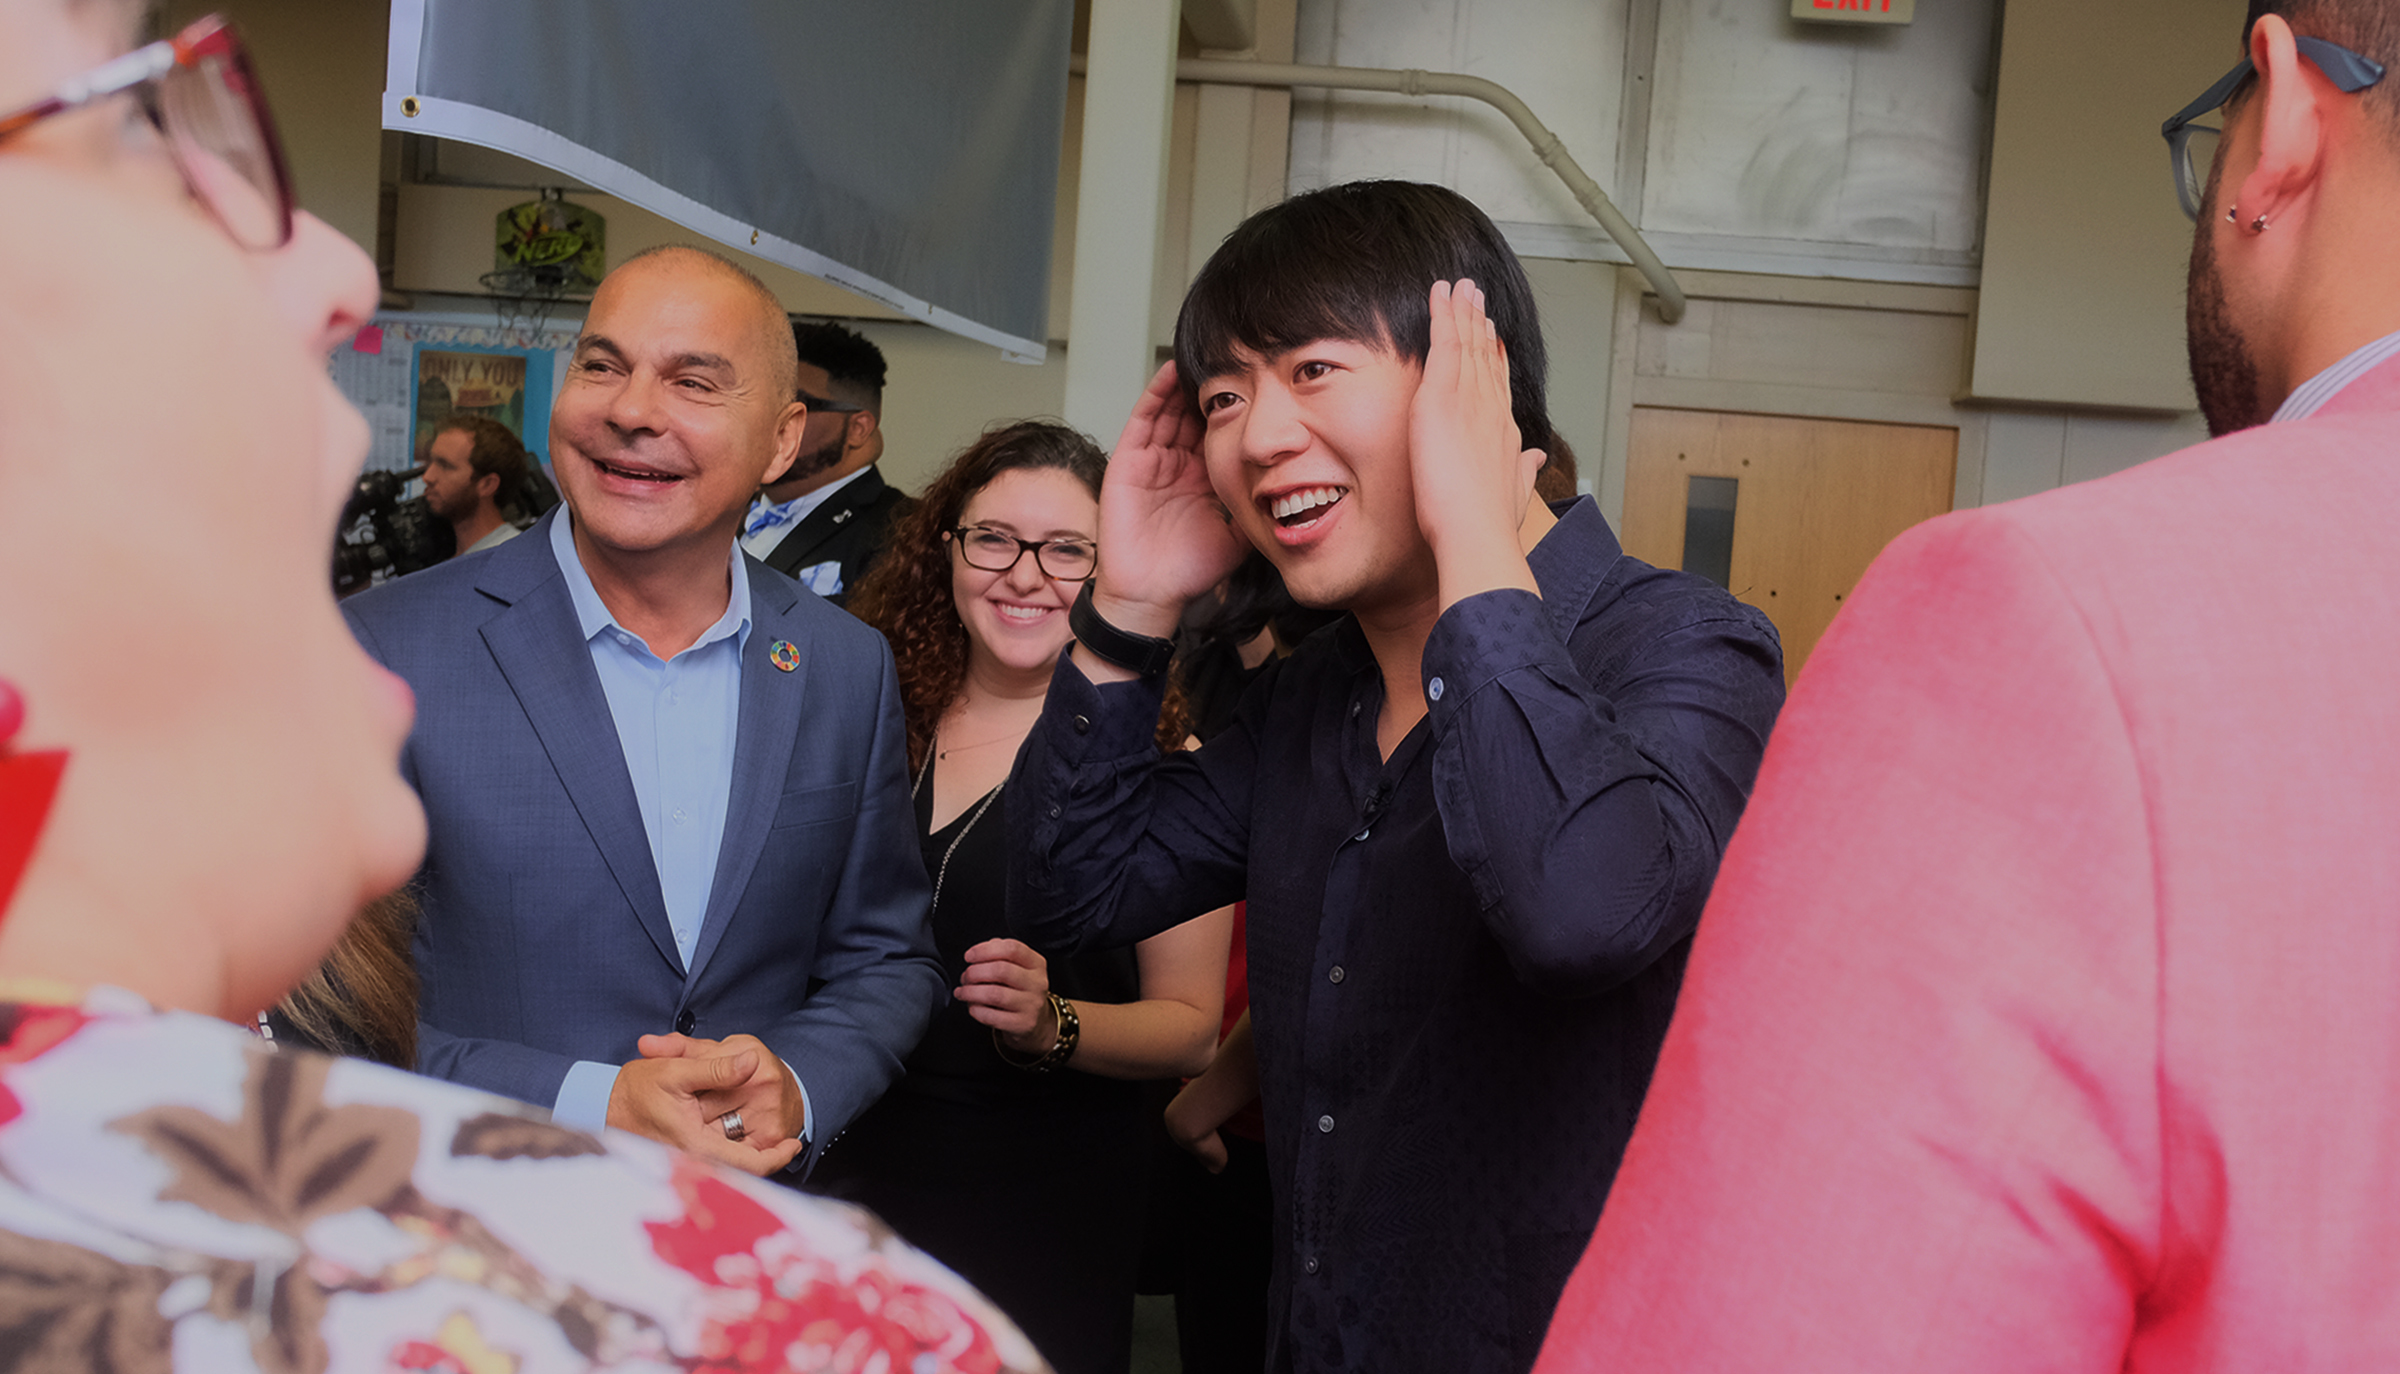 Lang Lang reacts to the enthusiastic reception he received as he entered the music lab at Thomas Holme Elementary school.